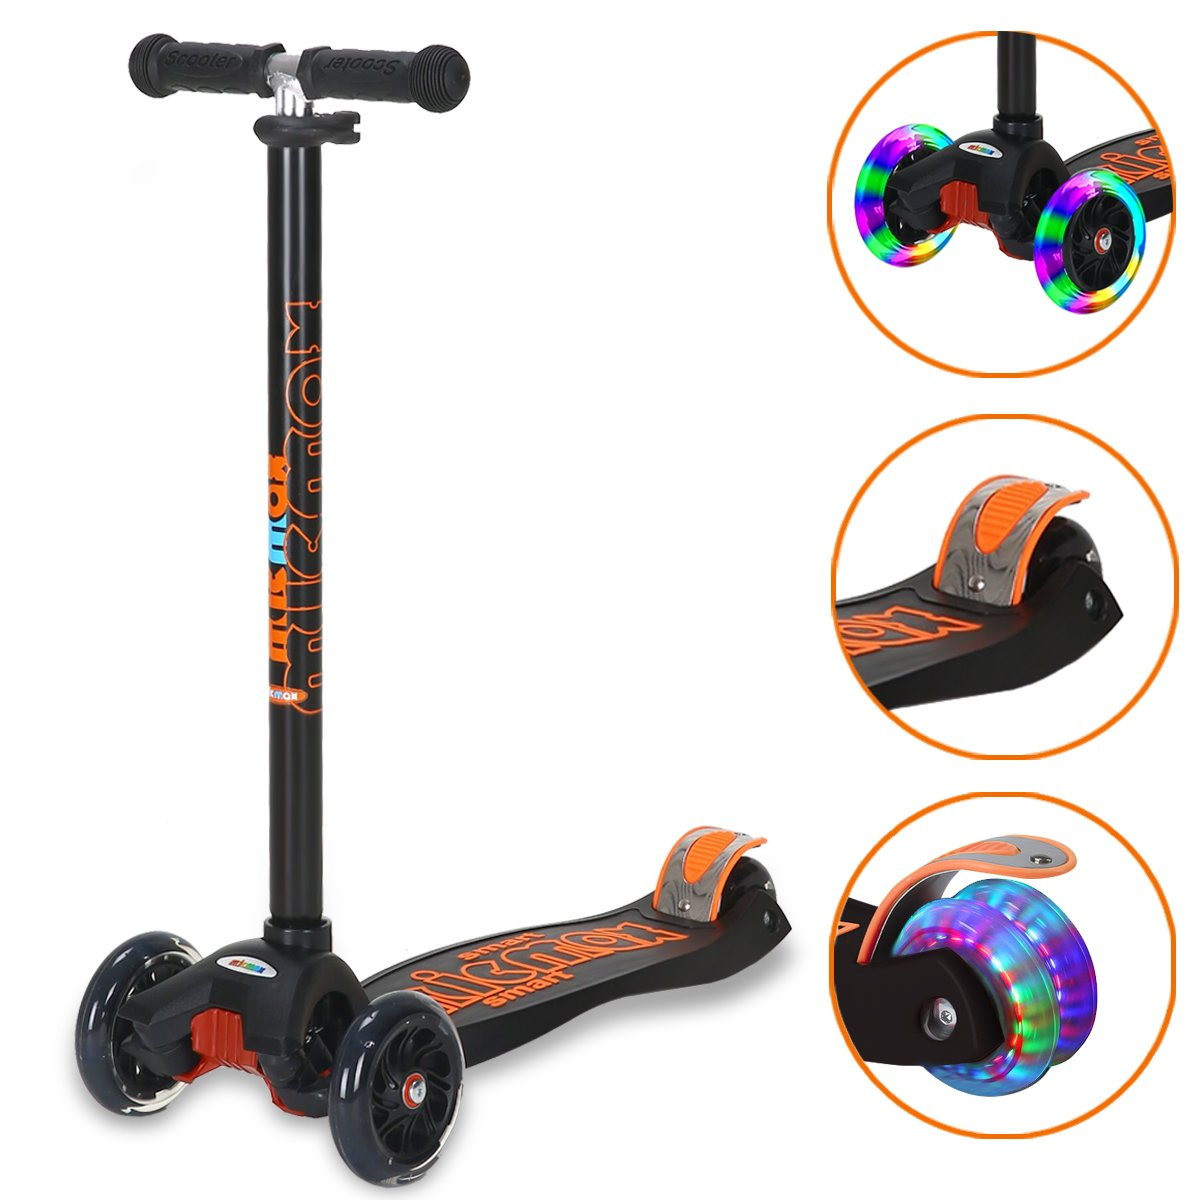 Banne Scooter Height Adjustable Lean to Steer Flashing PU Wheels 3 Wheel Kick Scooters for Kids Boys Girls (Black) by Banne